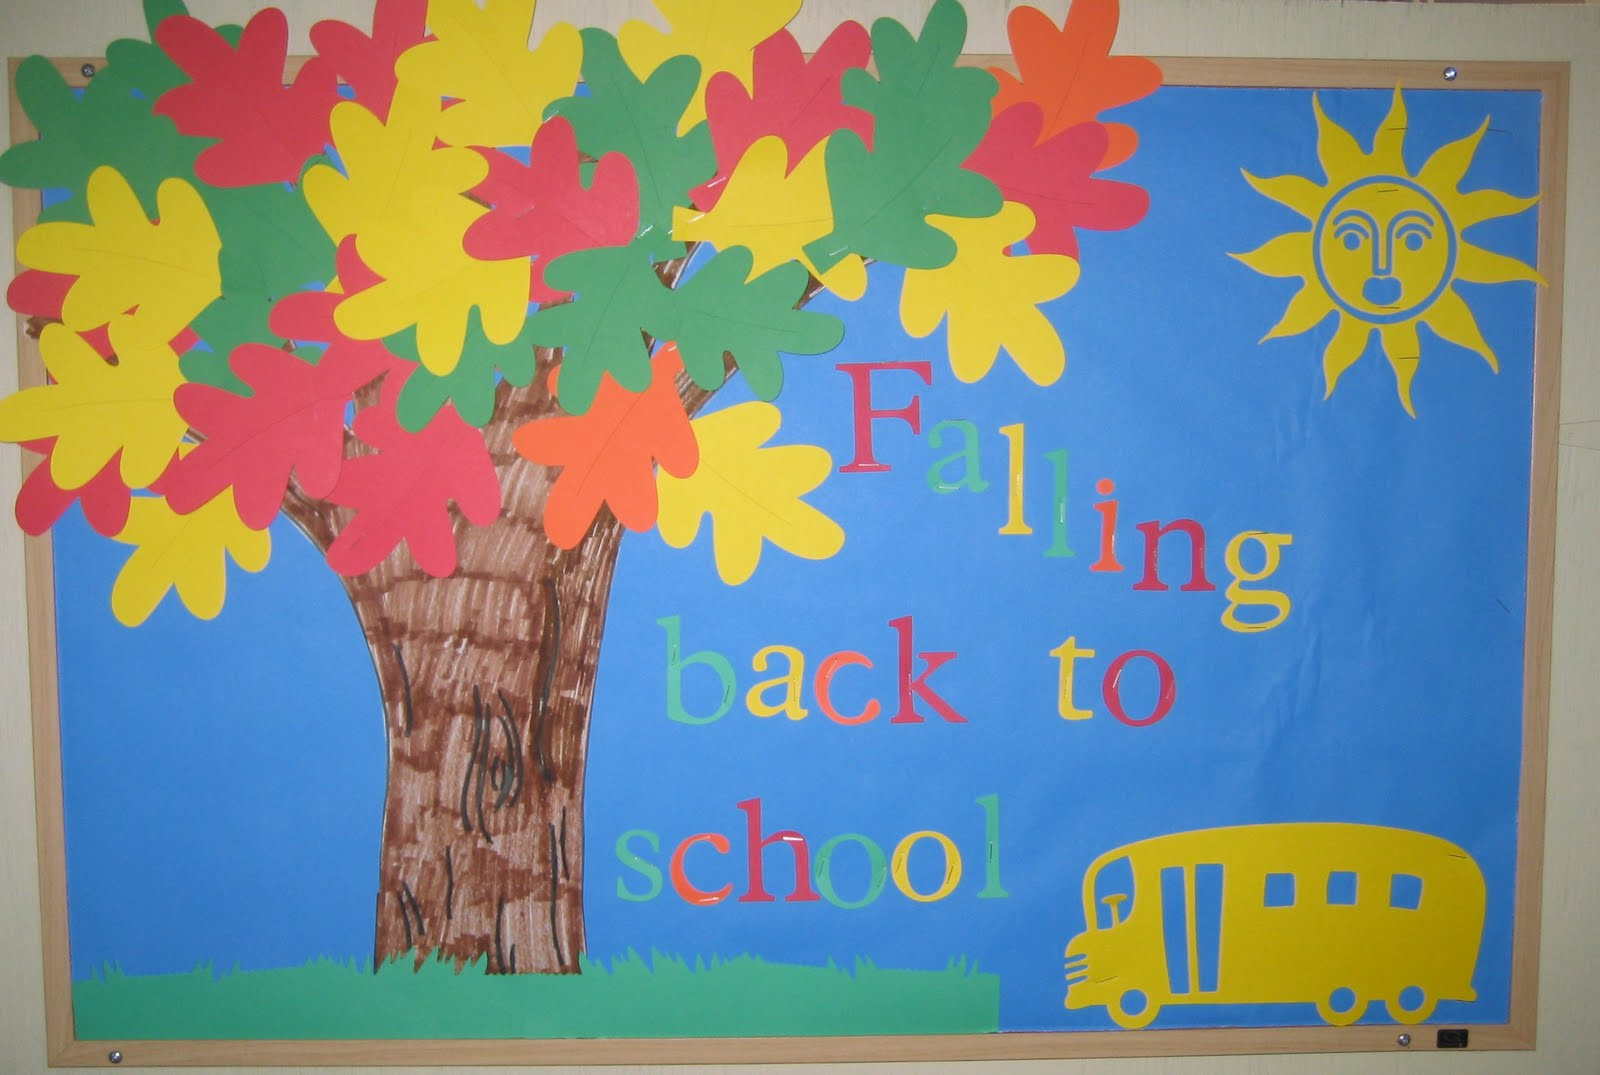 Bulletin board ideas for the month of july - I Did Up A New Bulletin Board For The Start Of Preschool Next Week Falling Back To School I Used My Cricut Expression To Cut Out The Leaves Letters